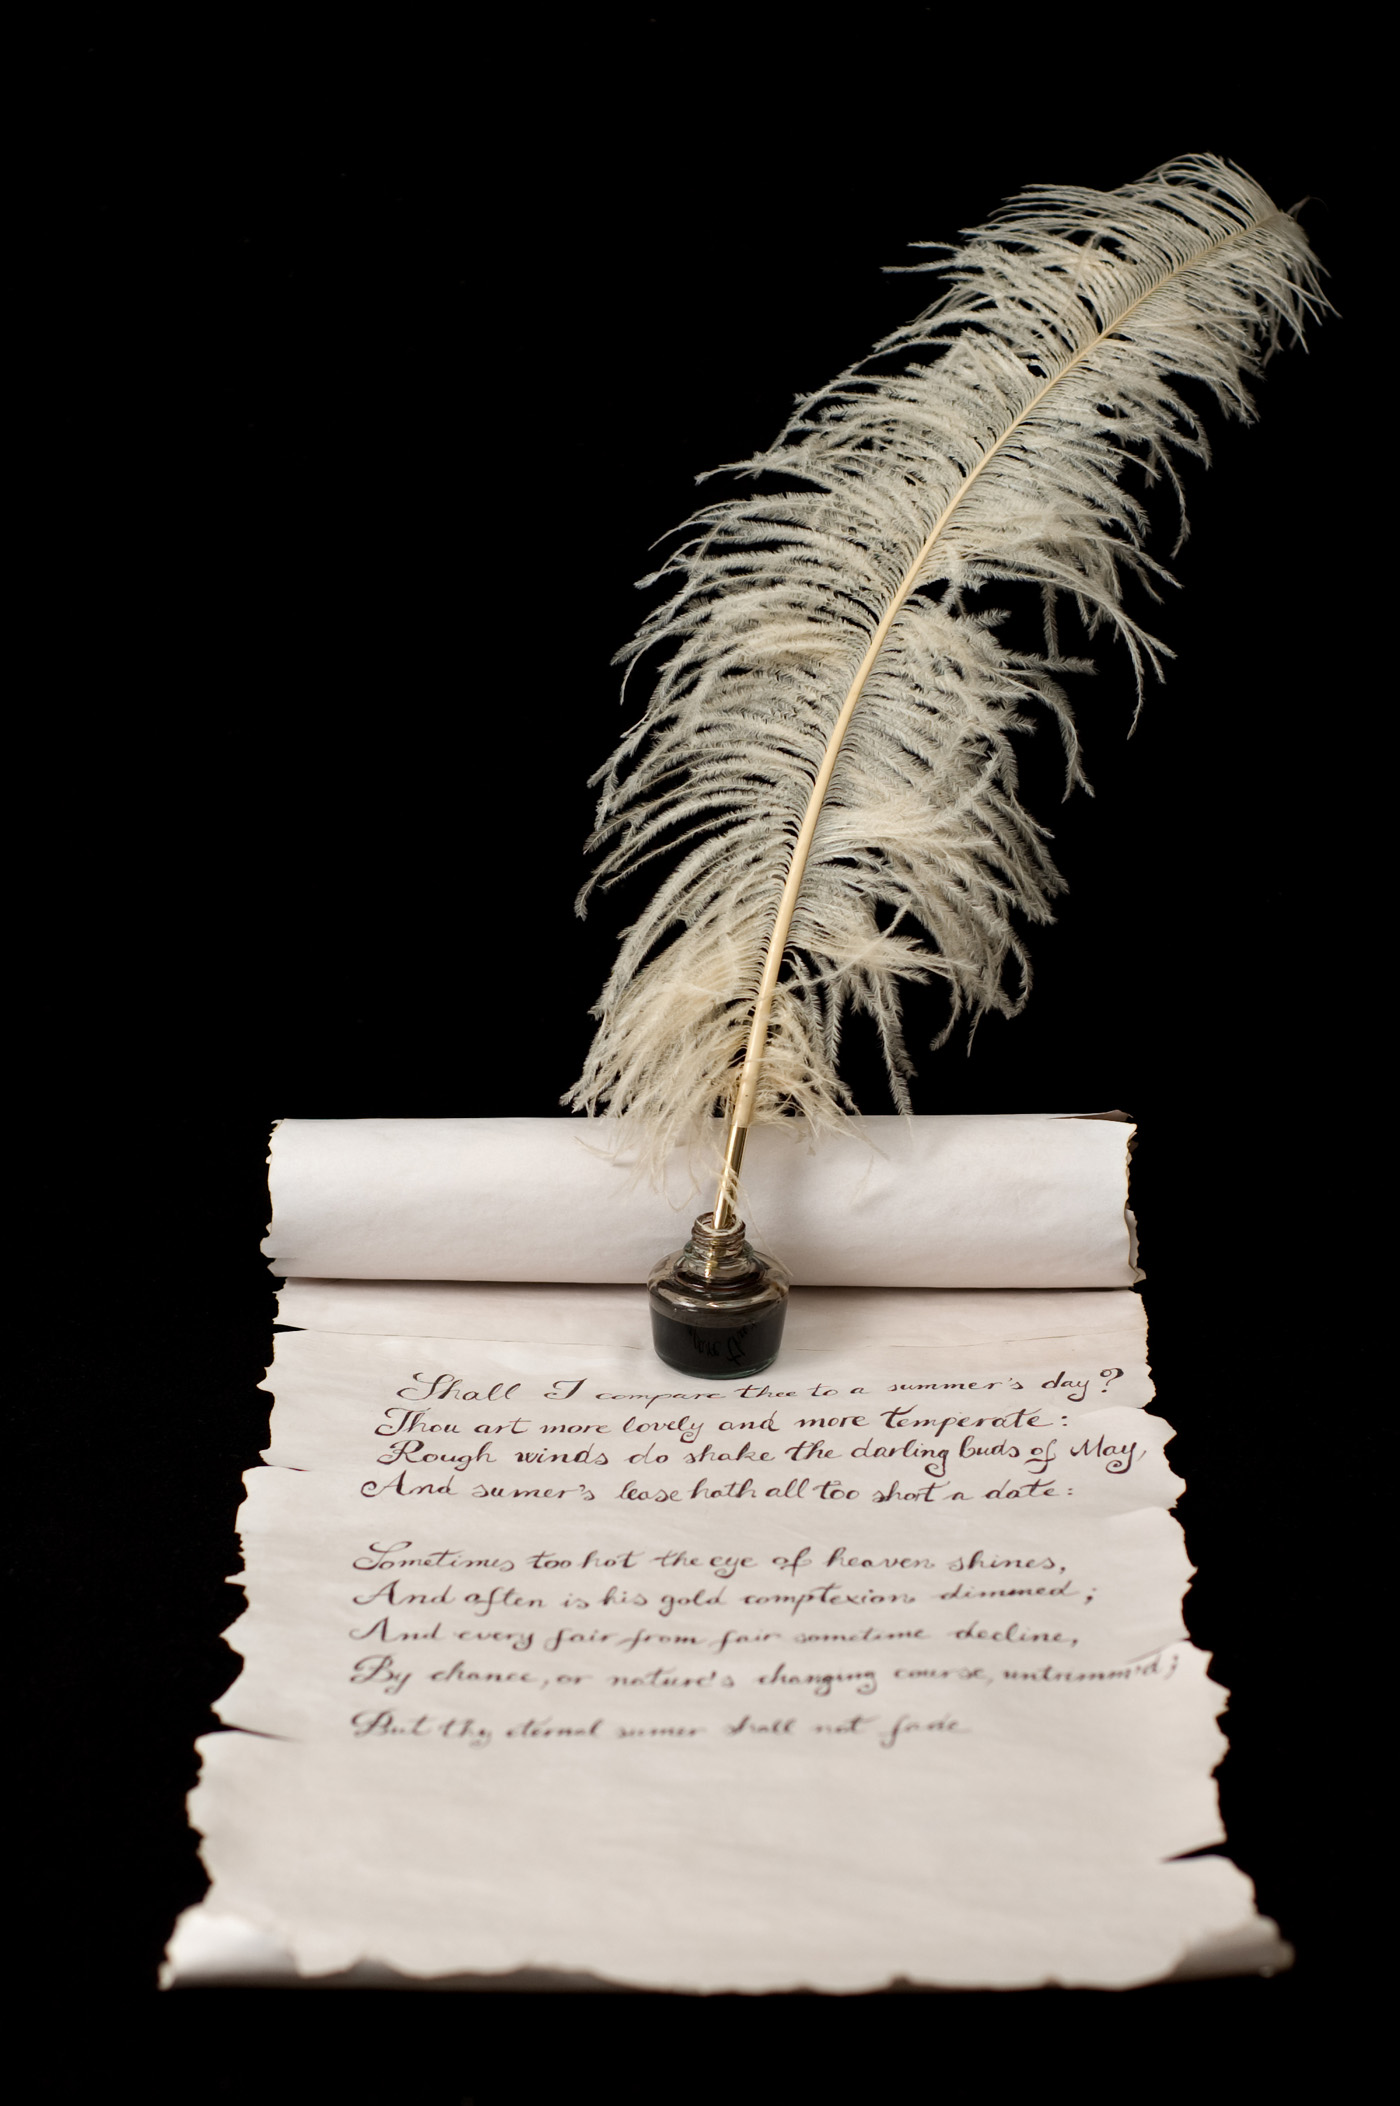 Feather pen and scrolls 6540